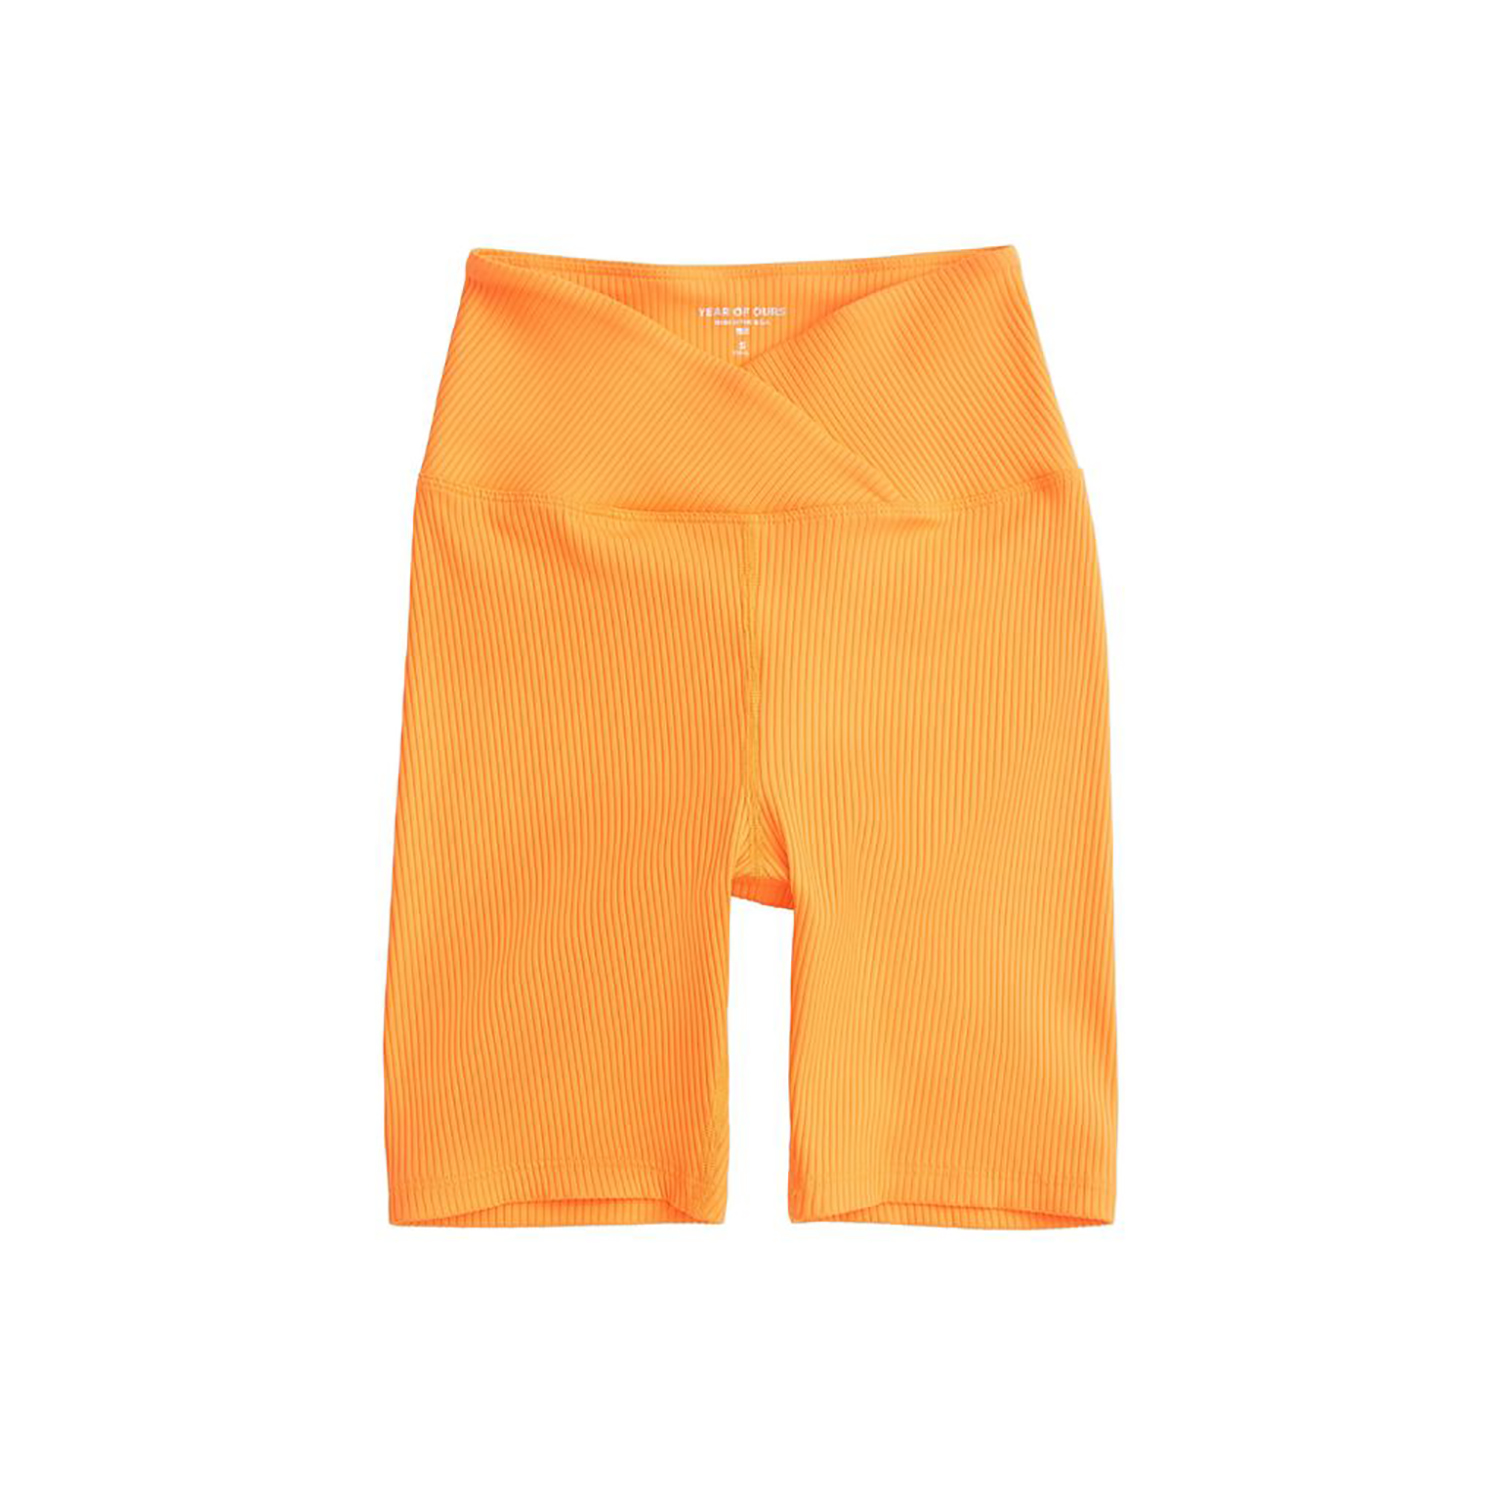 year-of-ours-bike-shorts